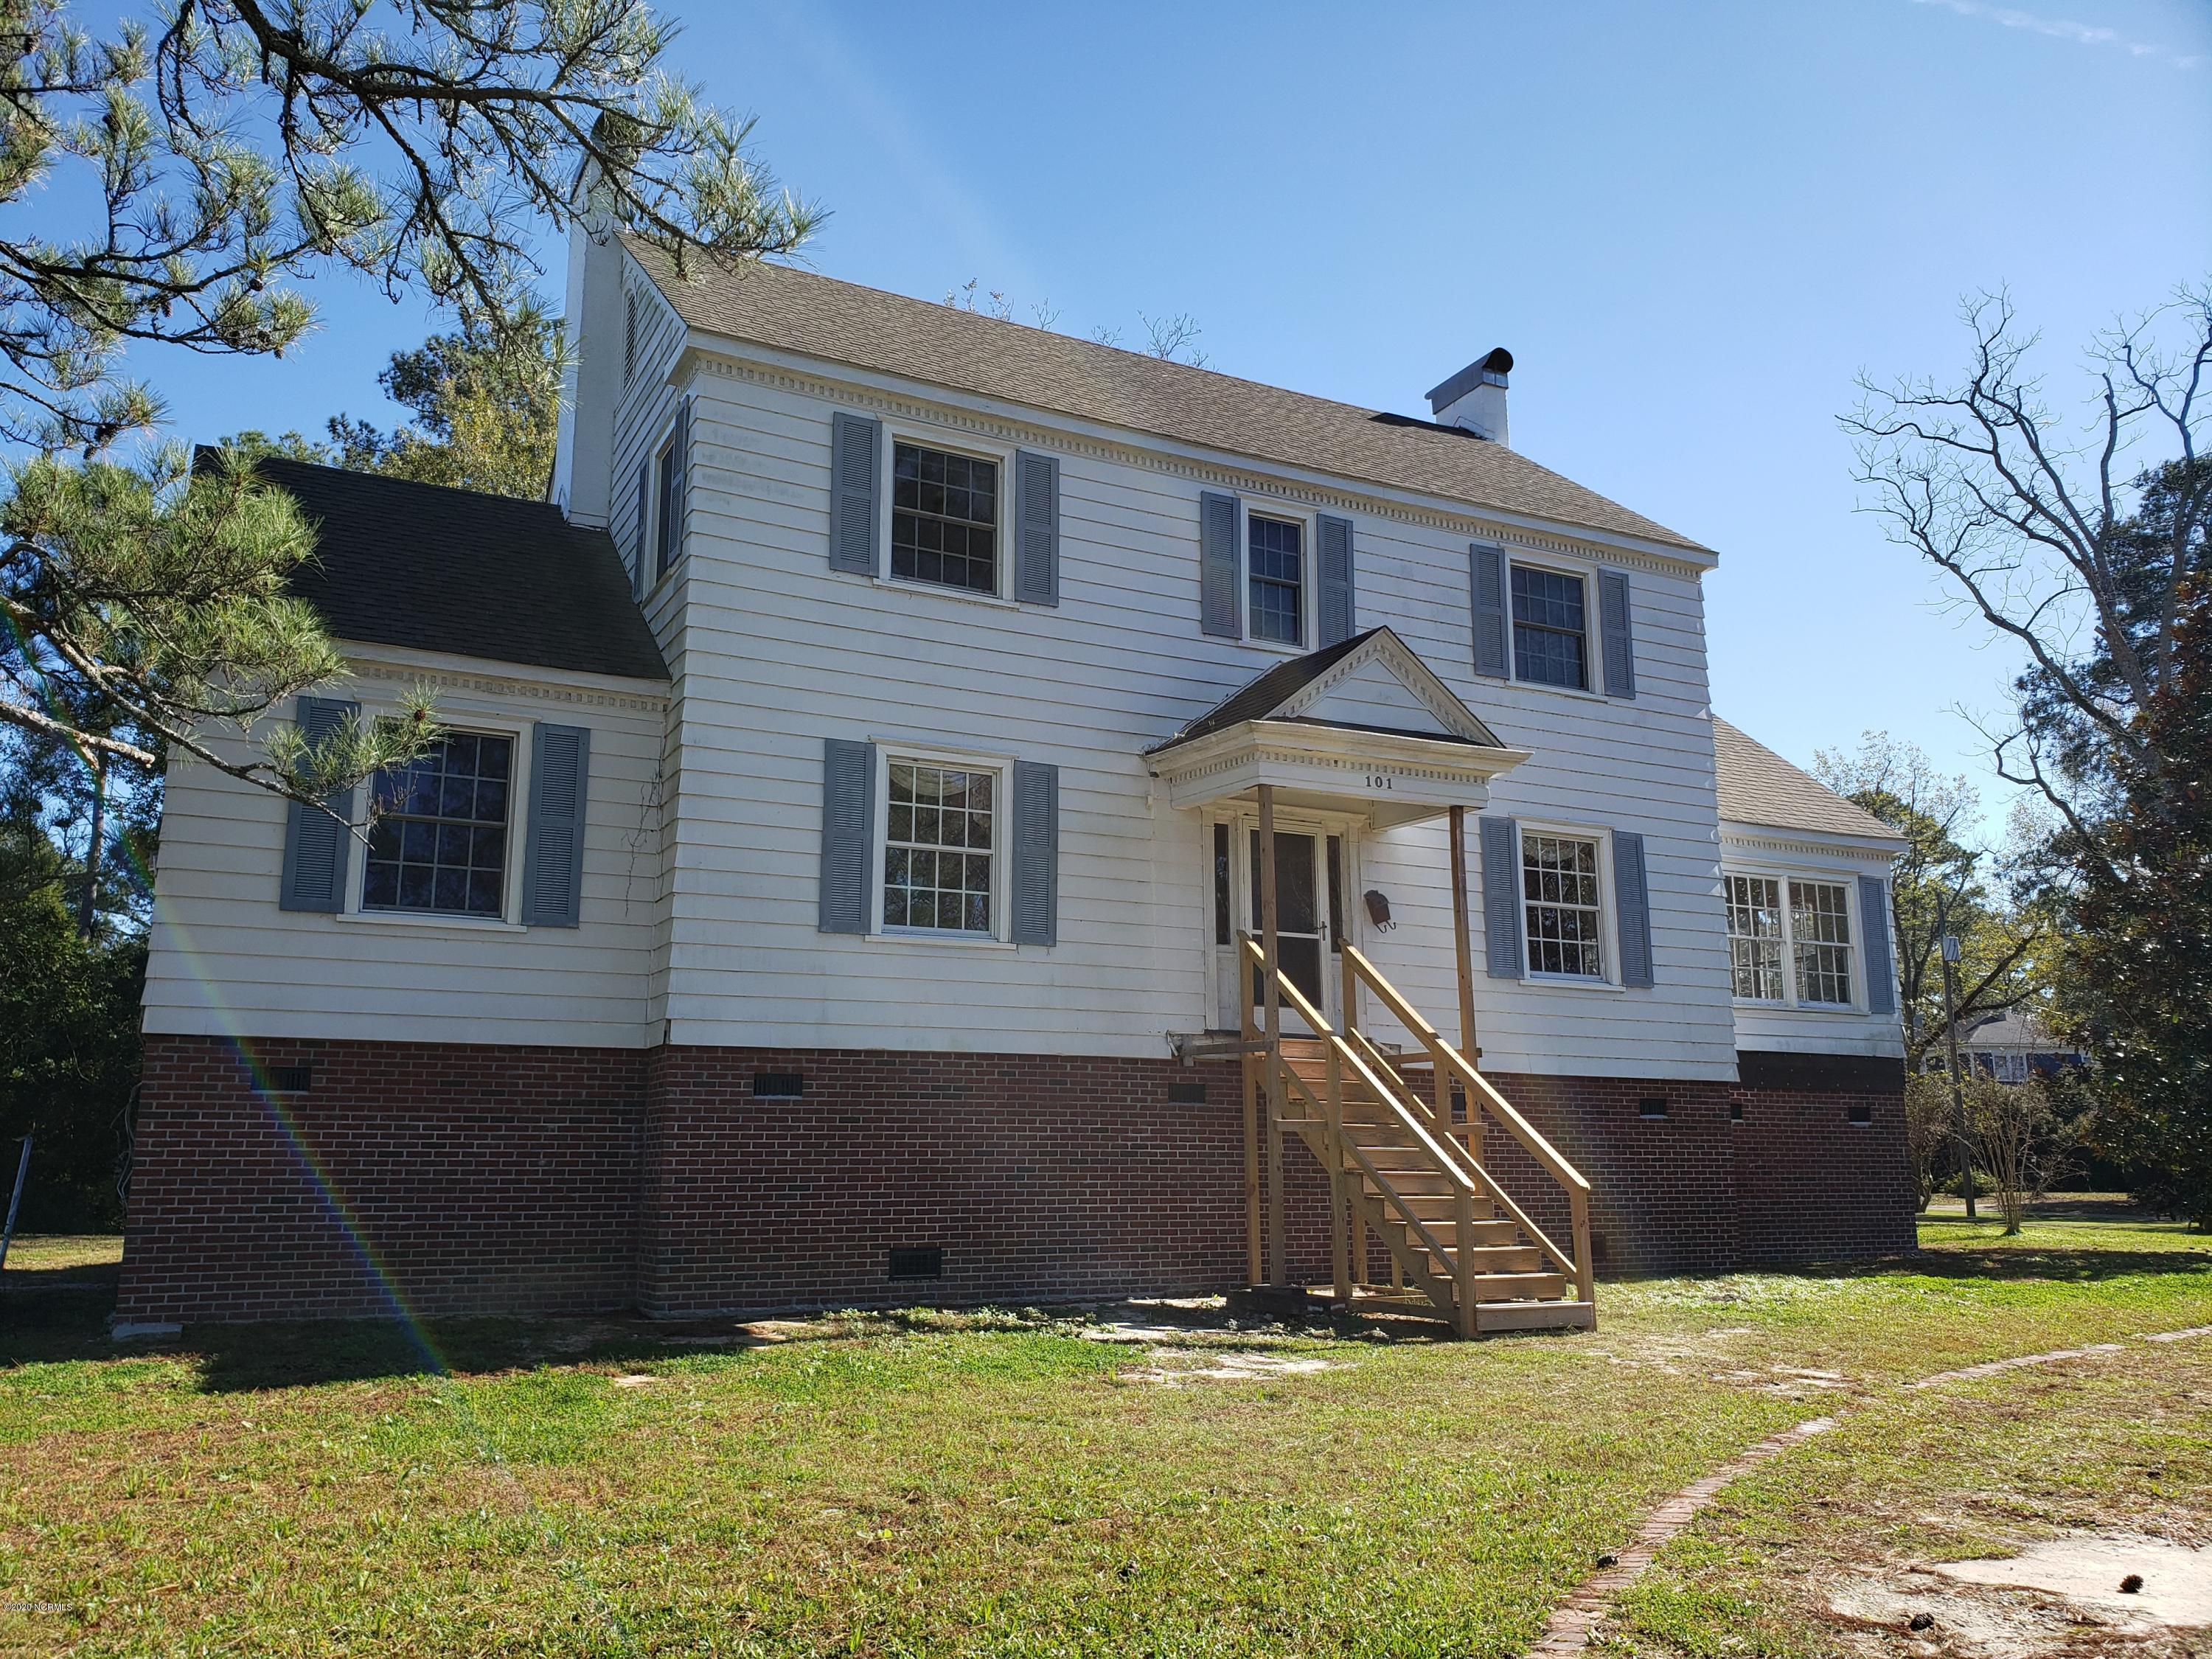 101 Edgewater Avenue, Washington, North Carolina 27889, 3 Bedrooms Bedrooms, 10 Rooms Rooms,3 BathroomsBathrooms,Single family residence,For sale,Edgewater,100246916